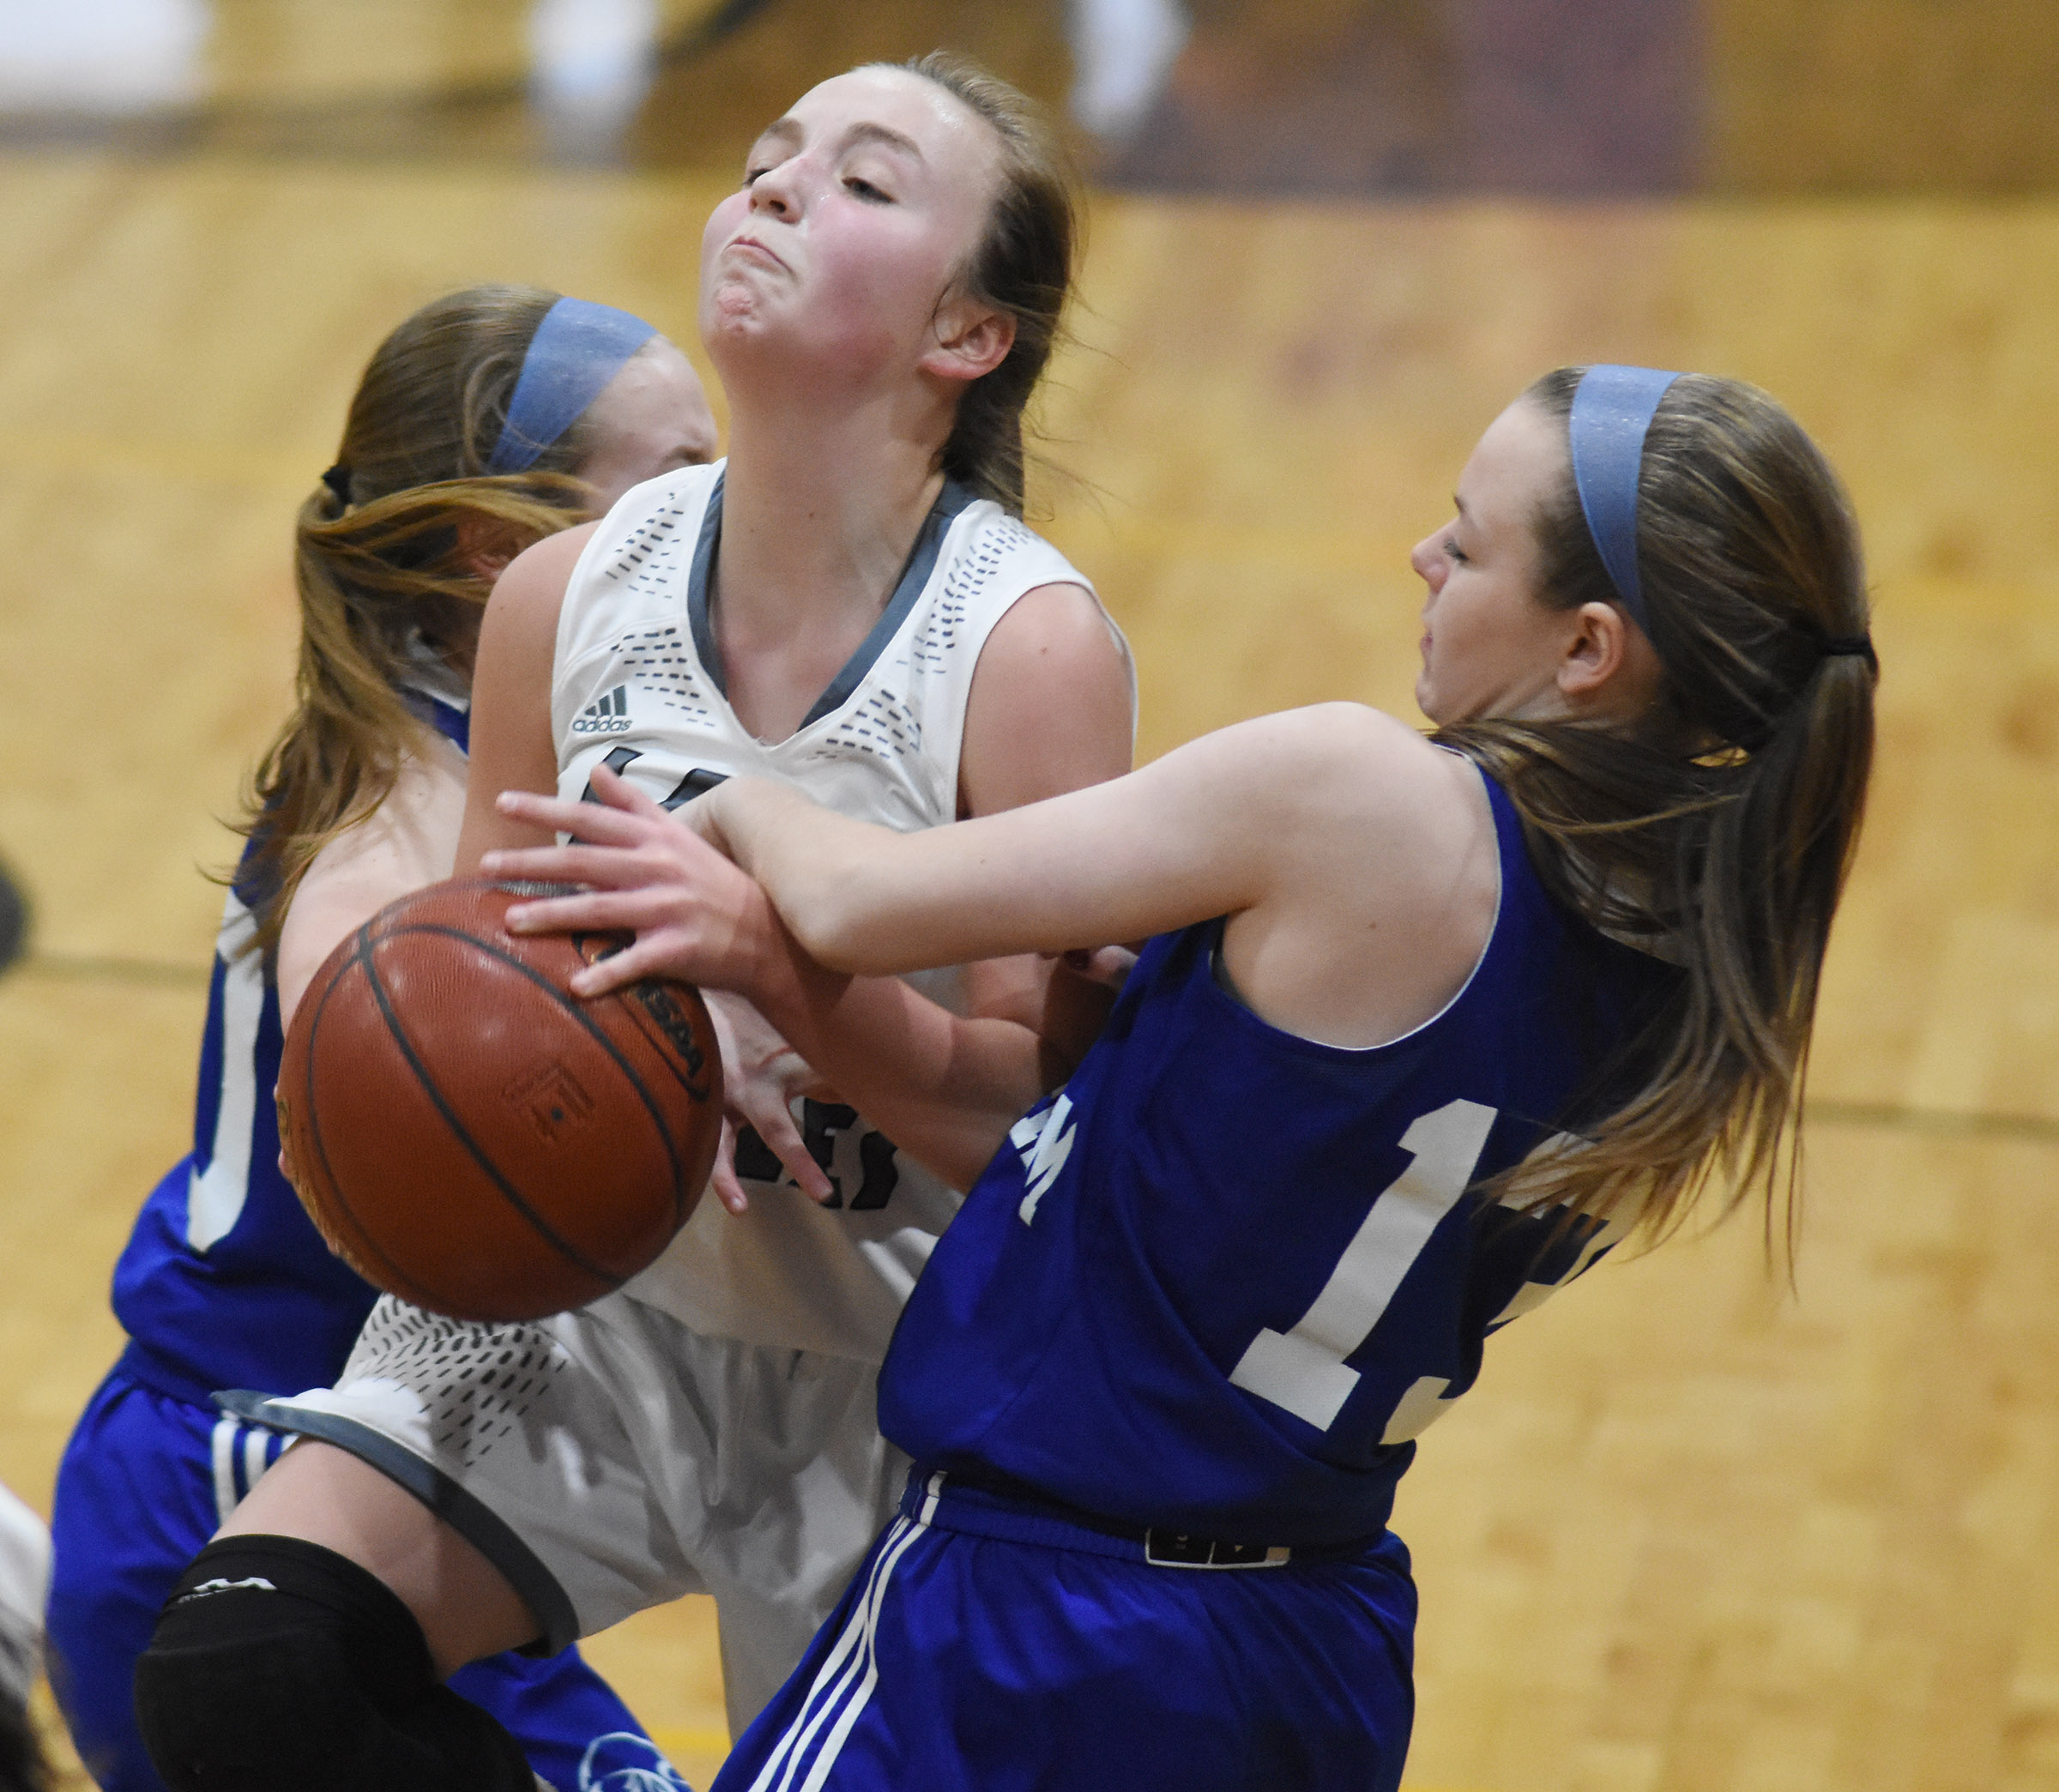 Campbellsville Middle School eighth-grader Lainey Watson protects the ball.